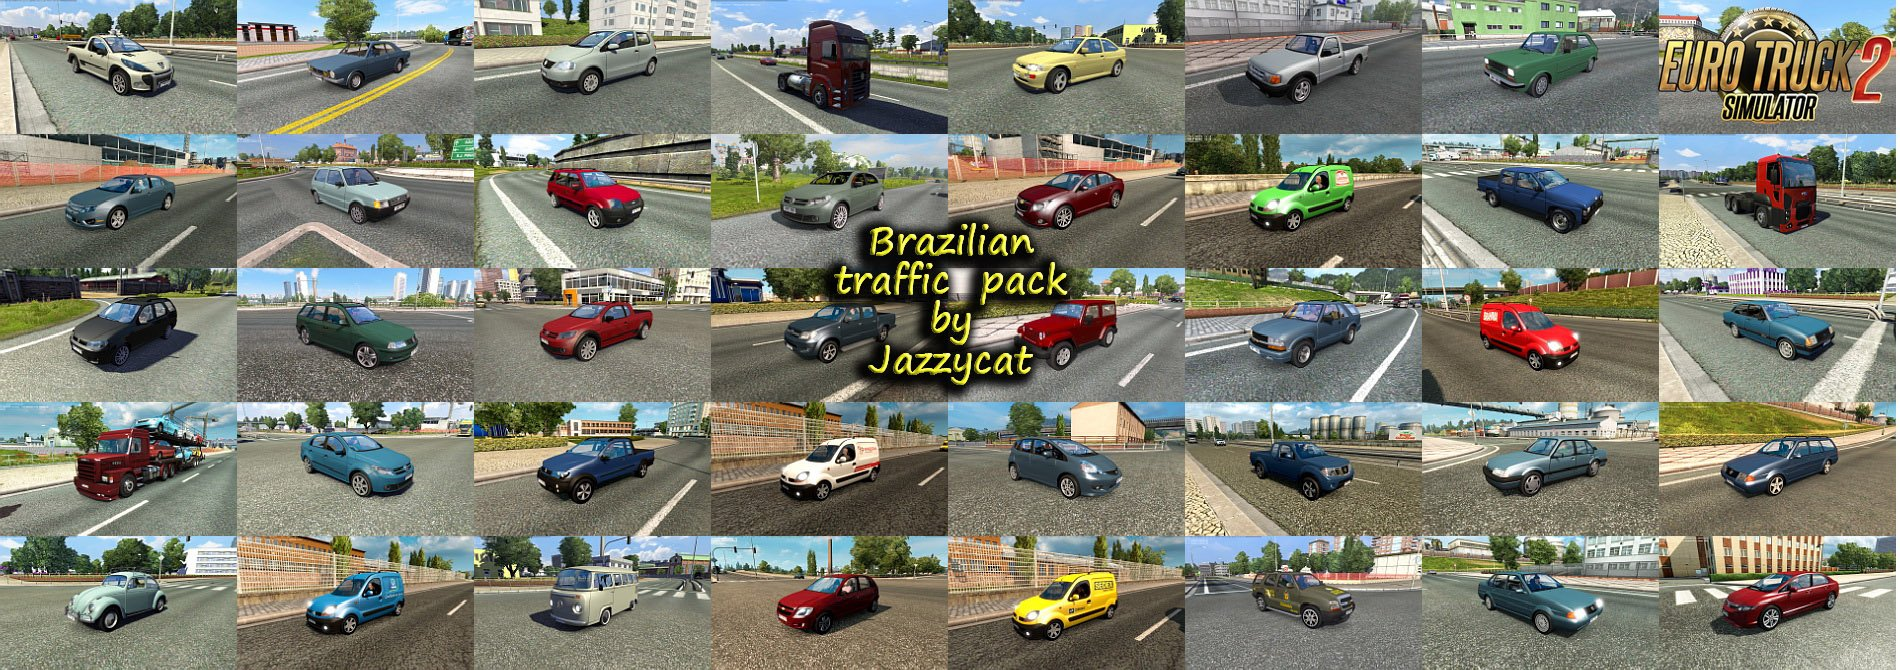 Brazilian Traffic Pack v2.5 by Jazzycat